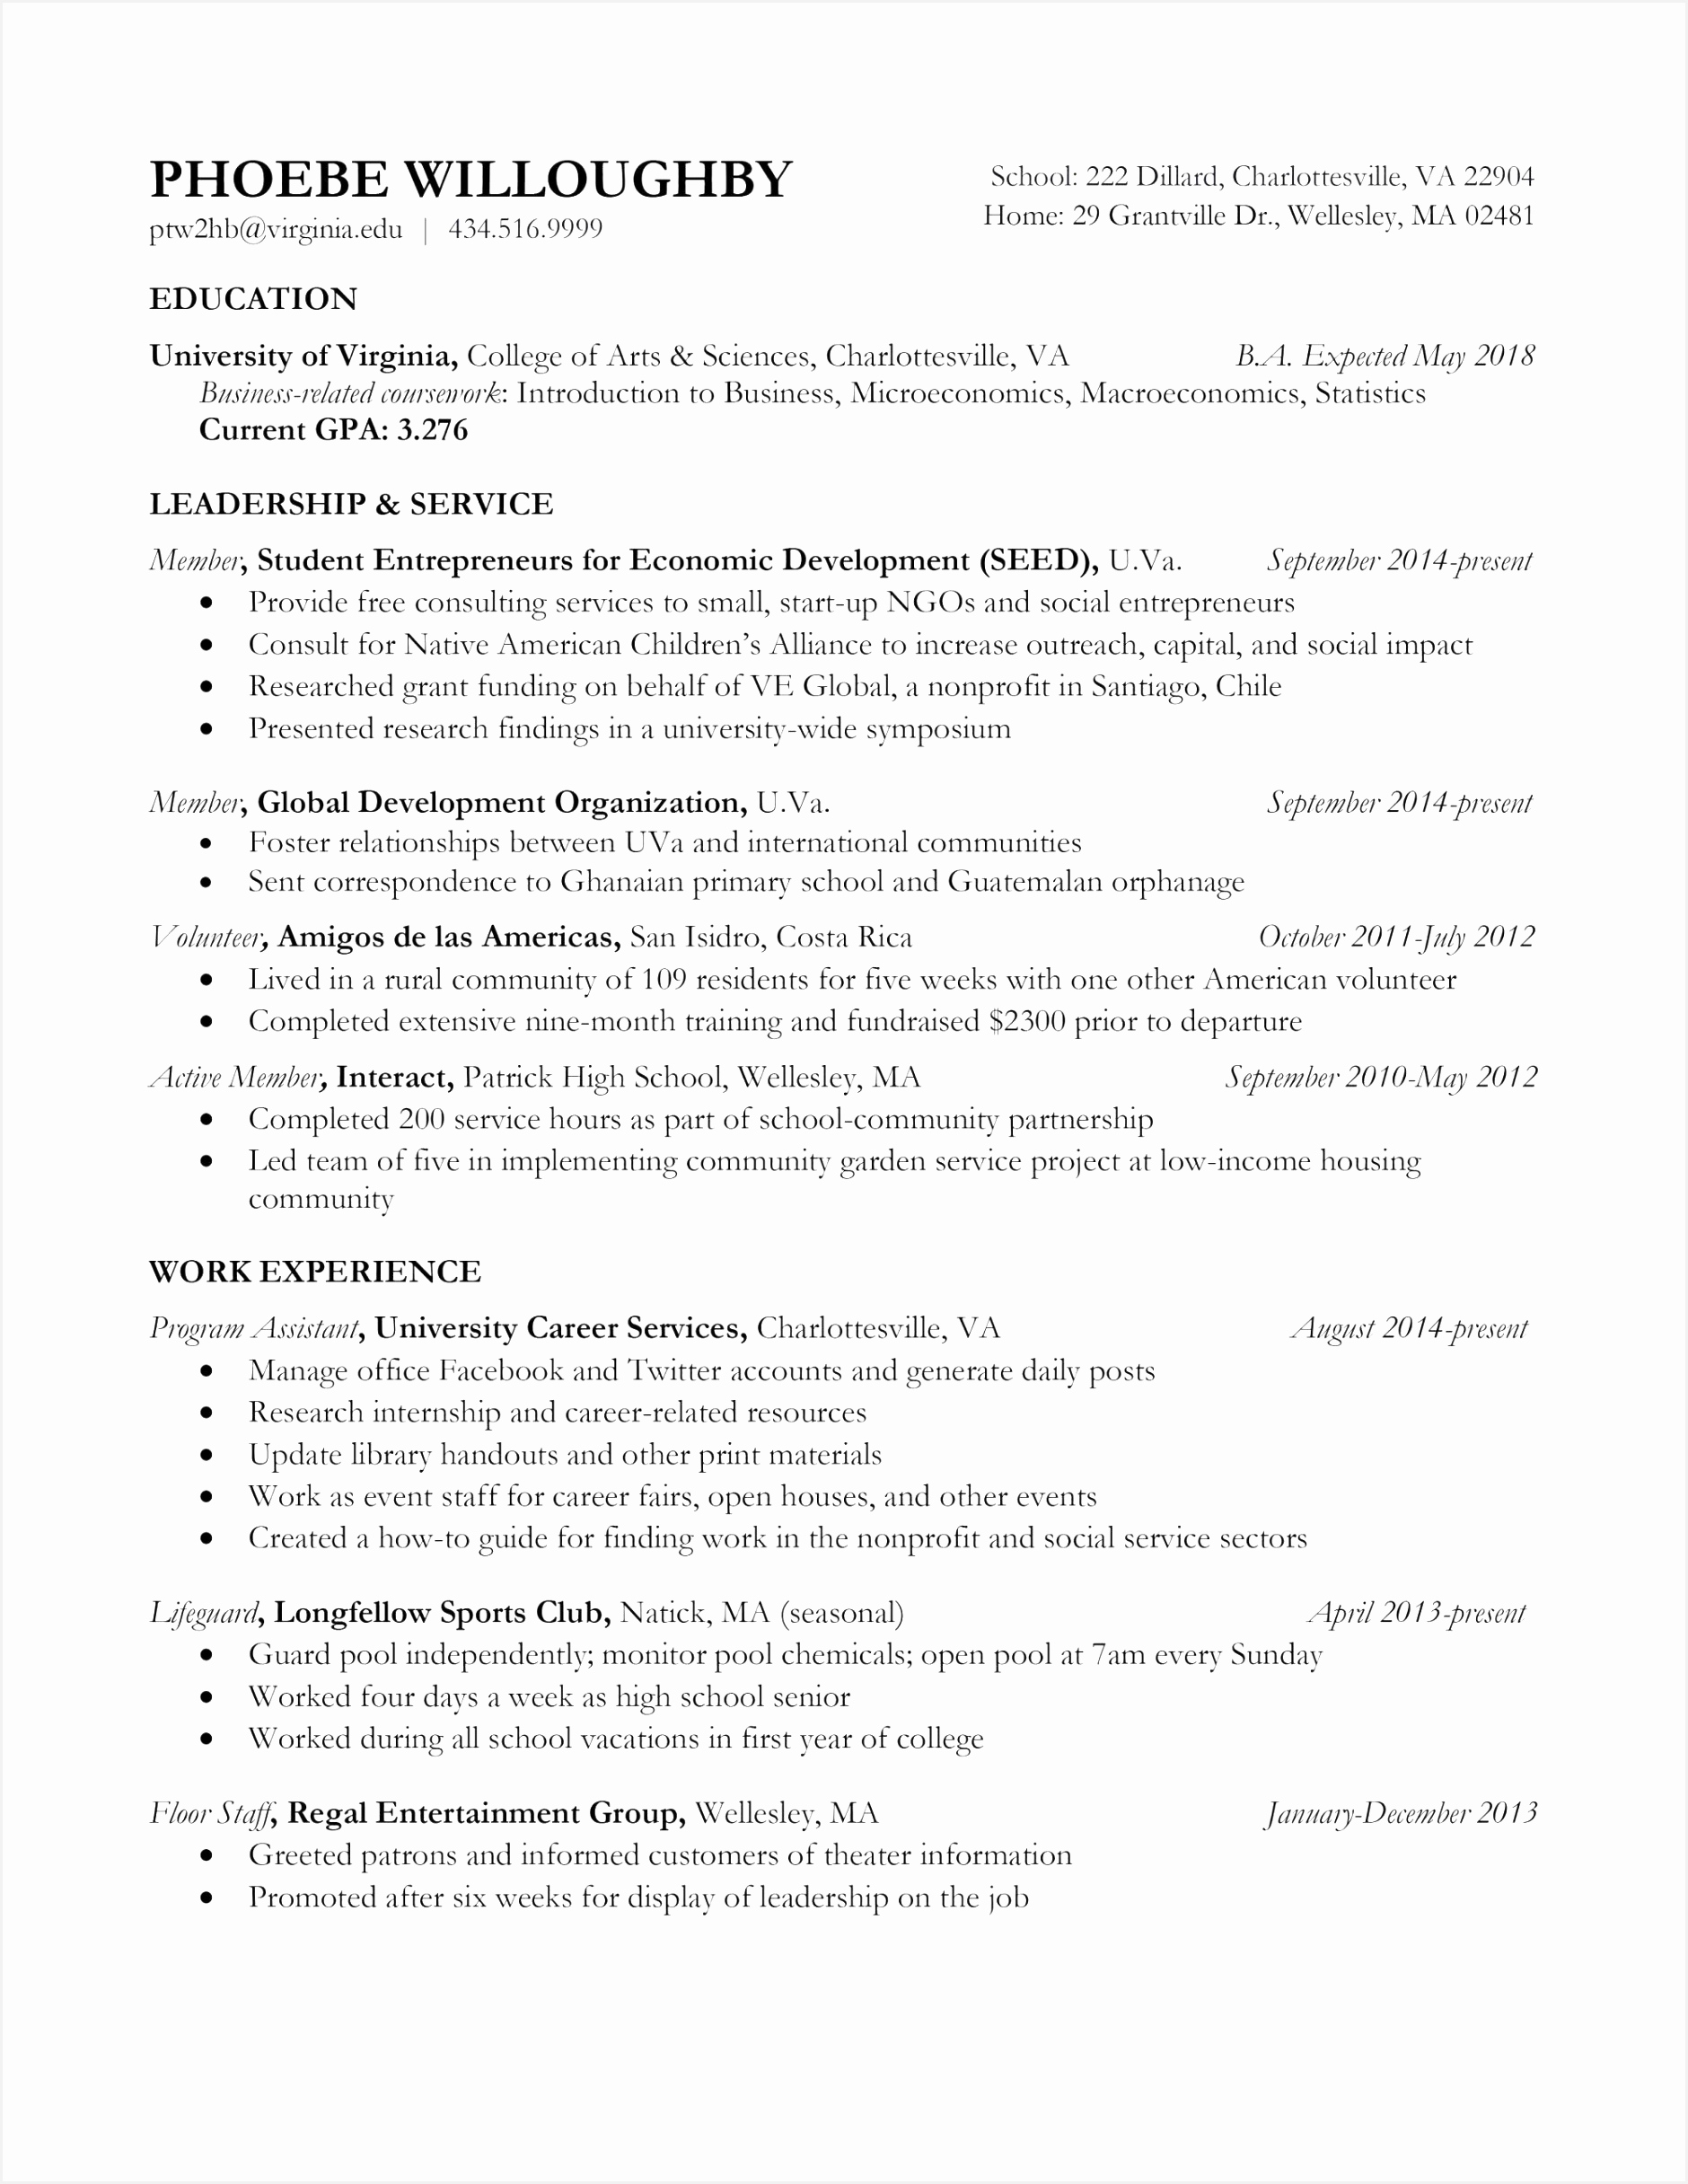 Sample Resume Retail Administrative Assistant New Chef Resume Samples Awesome Retail Resume 0d Archives Luxus Sample 24321880gXre